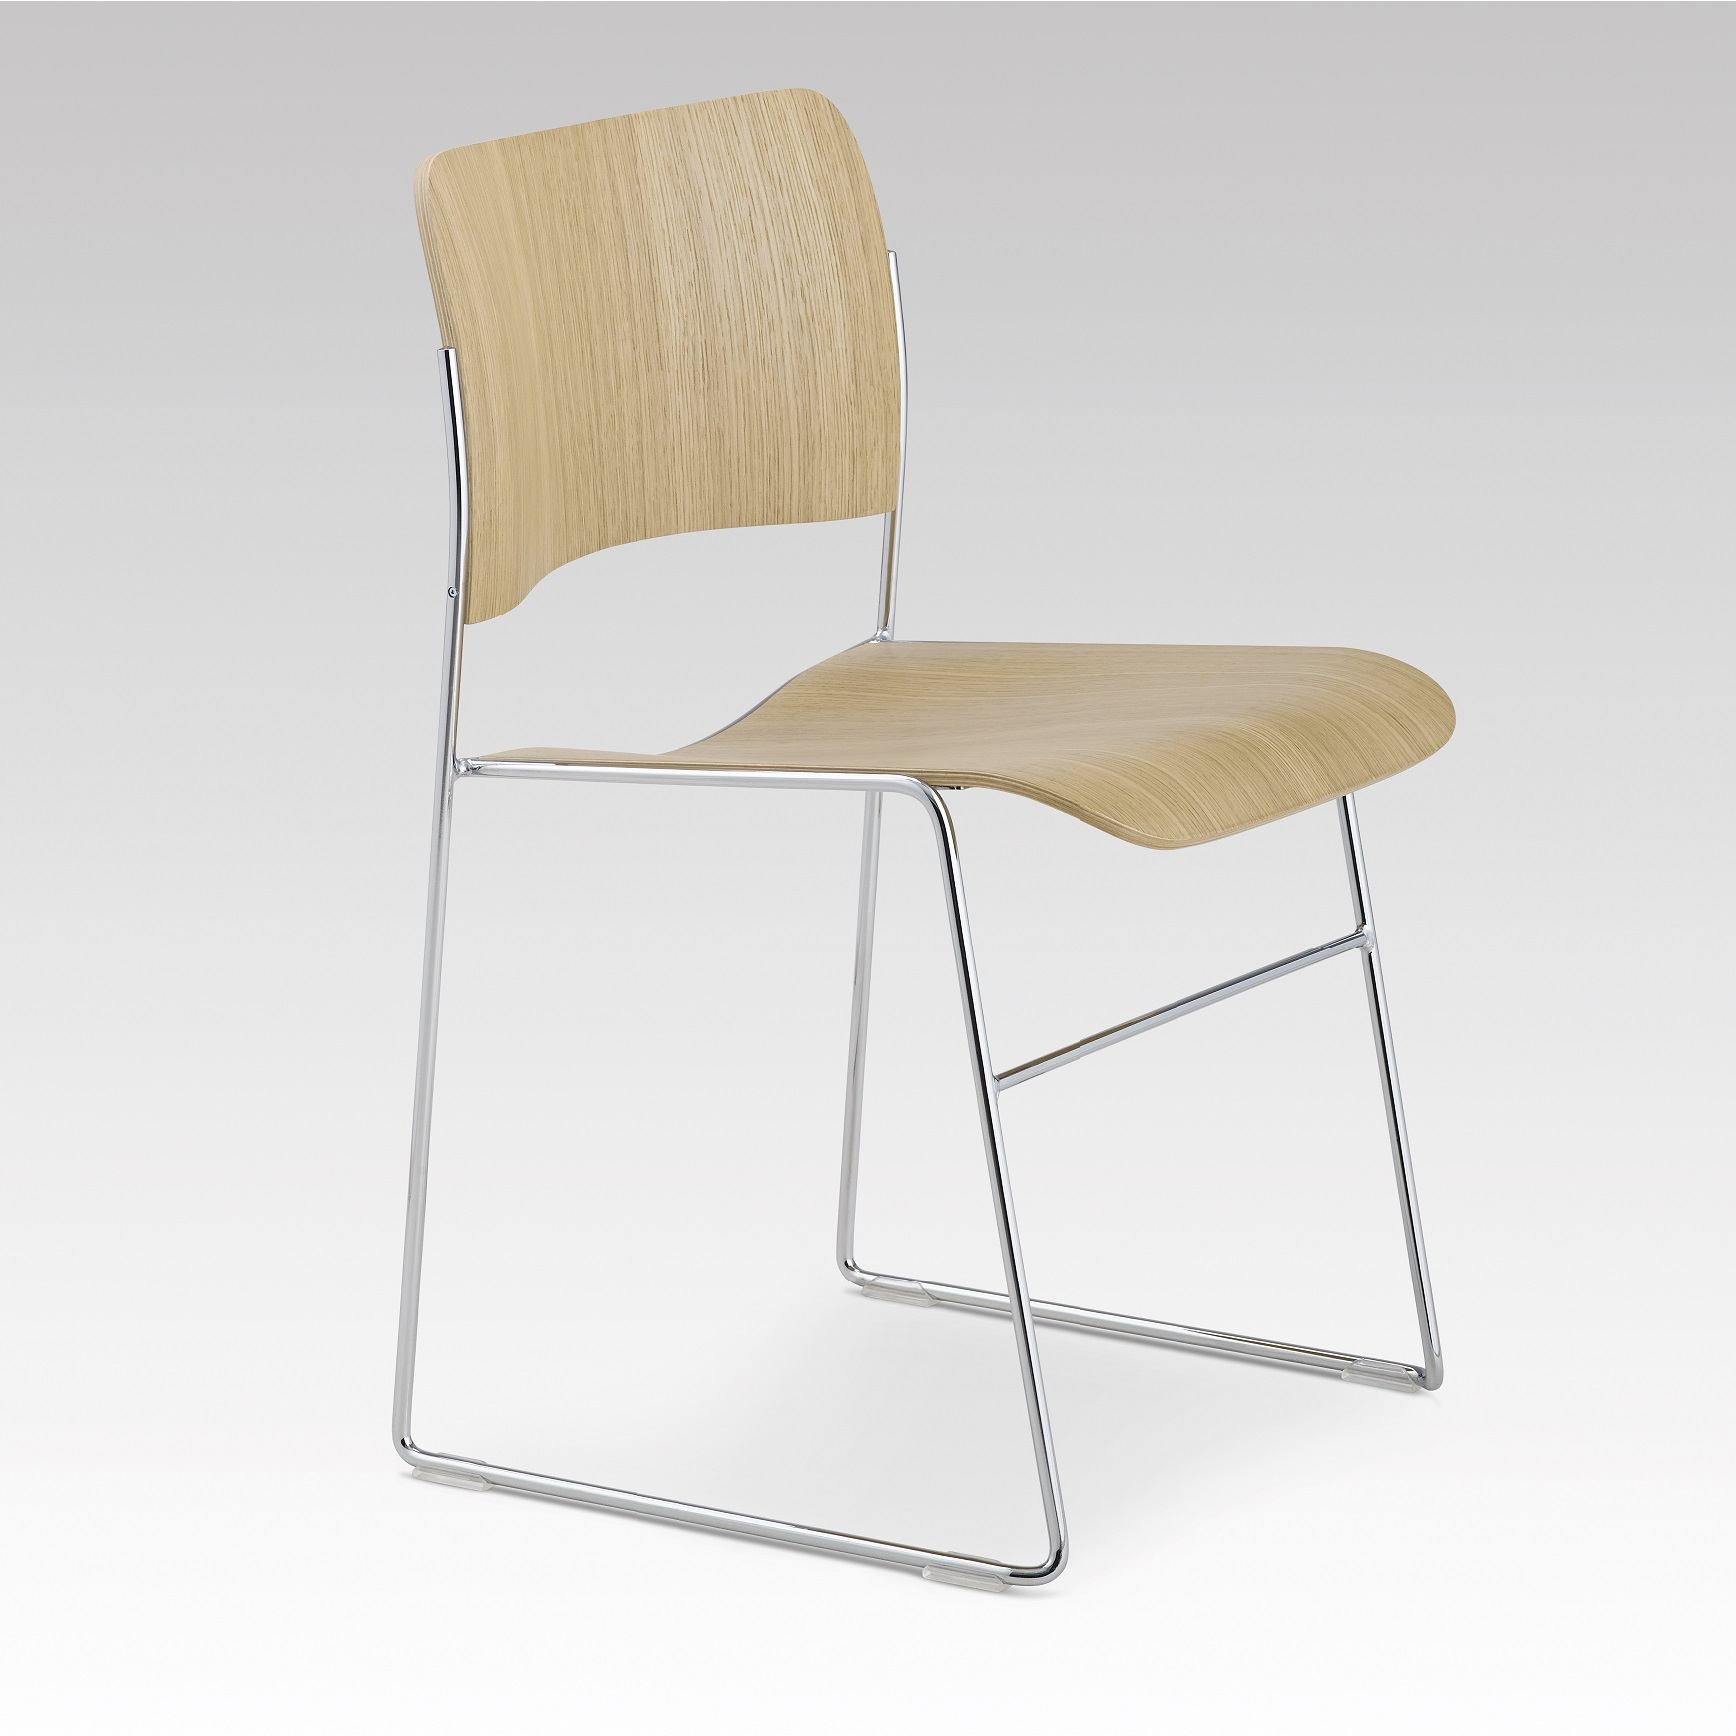 Awesome Howe 40 4 Chair Alpha Furniture Creativecarmelina Interior Chair Design Creativecarmelinacom